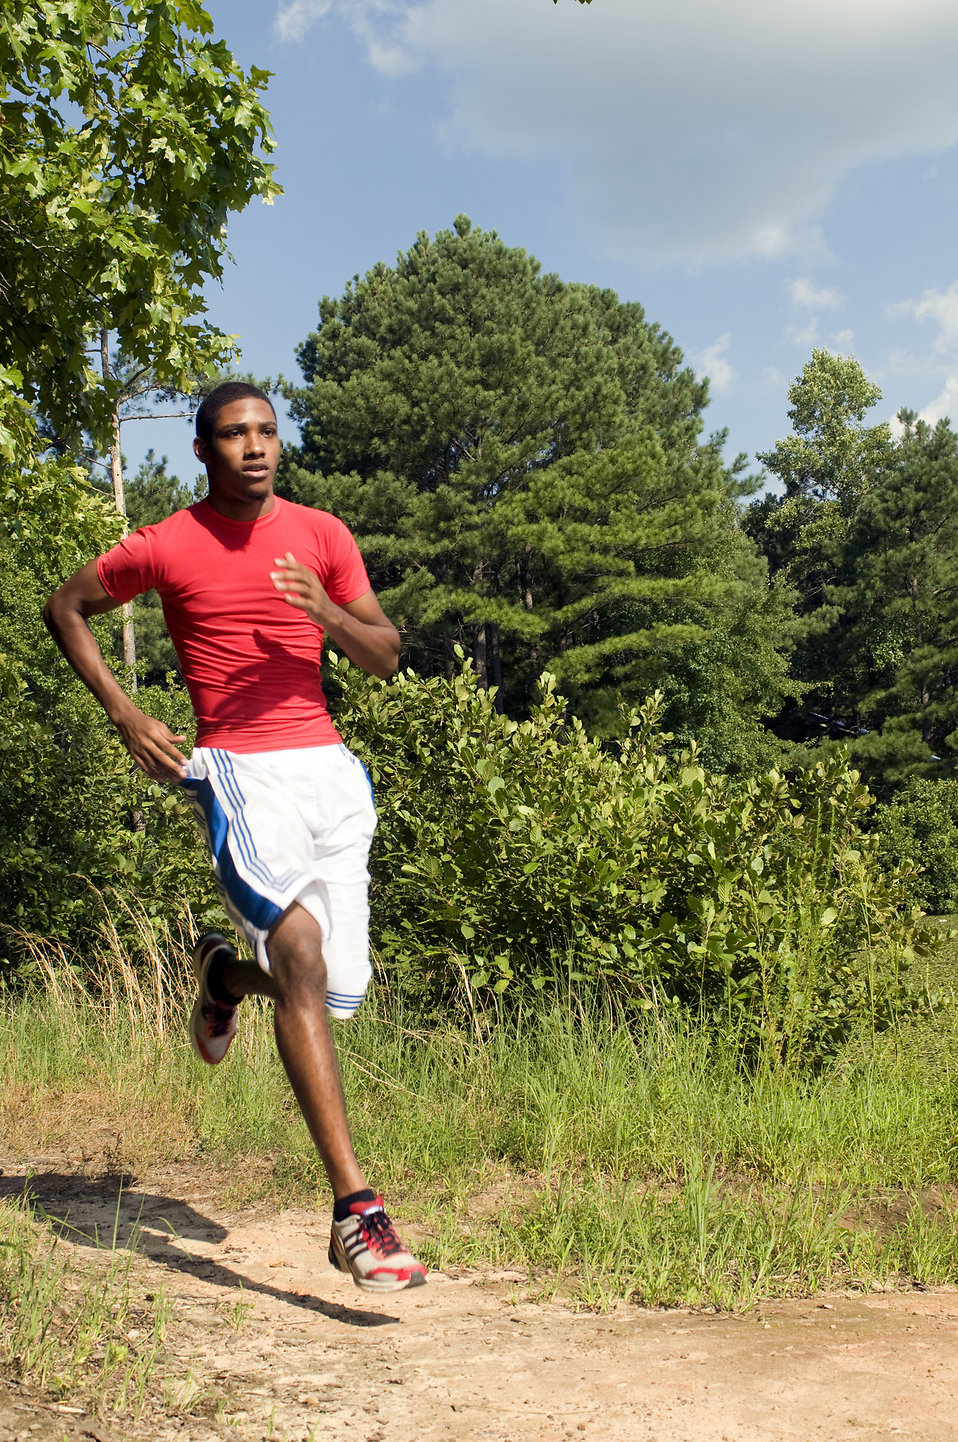 An African American man jogging outdoors : Free Stock Photo